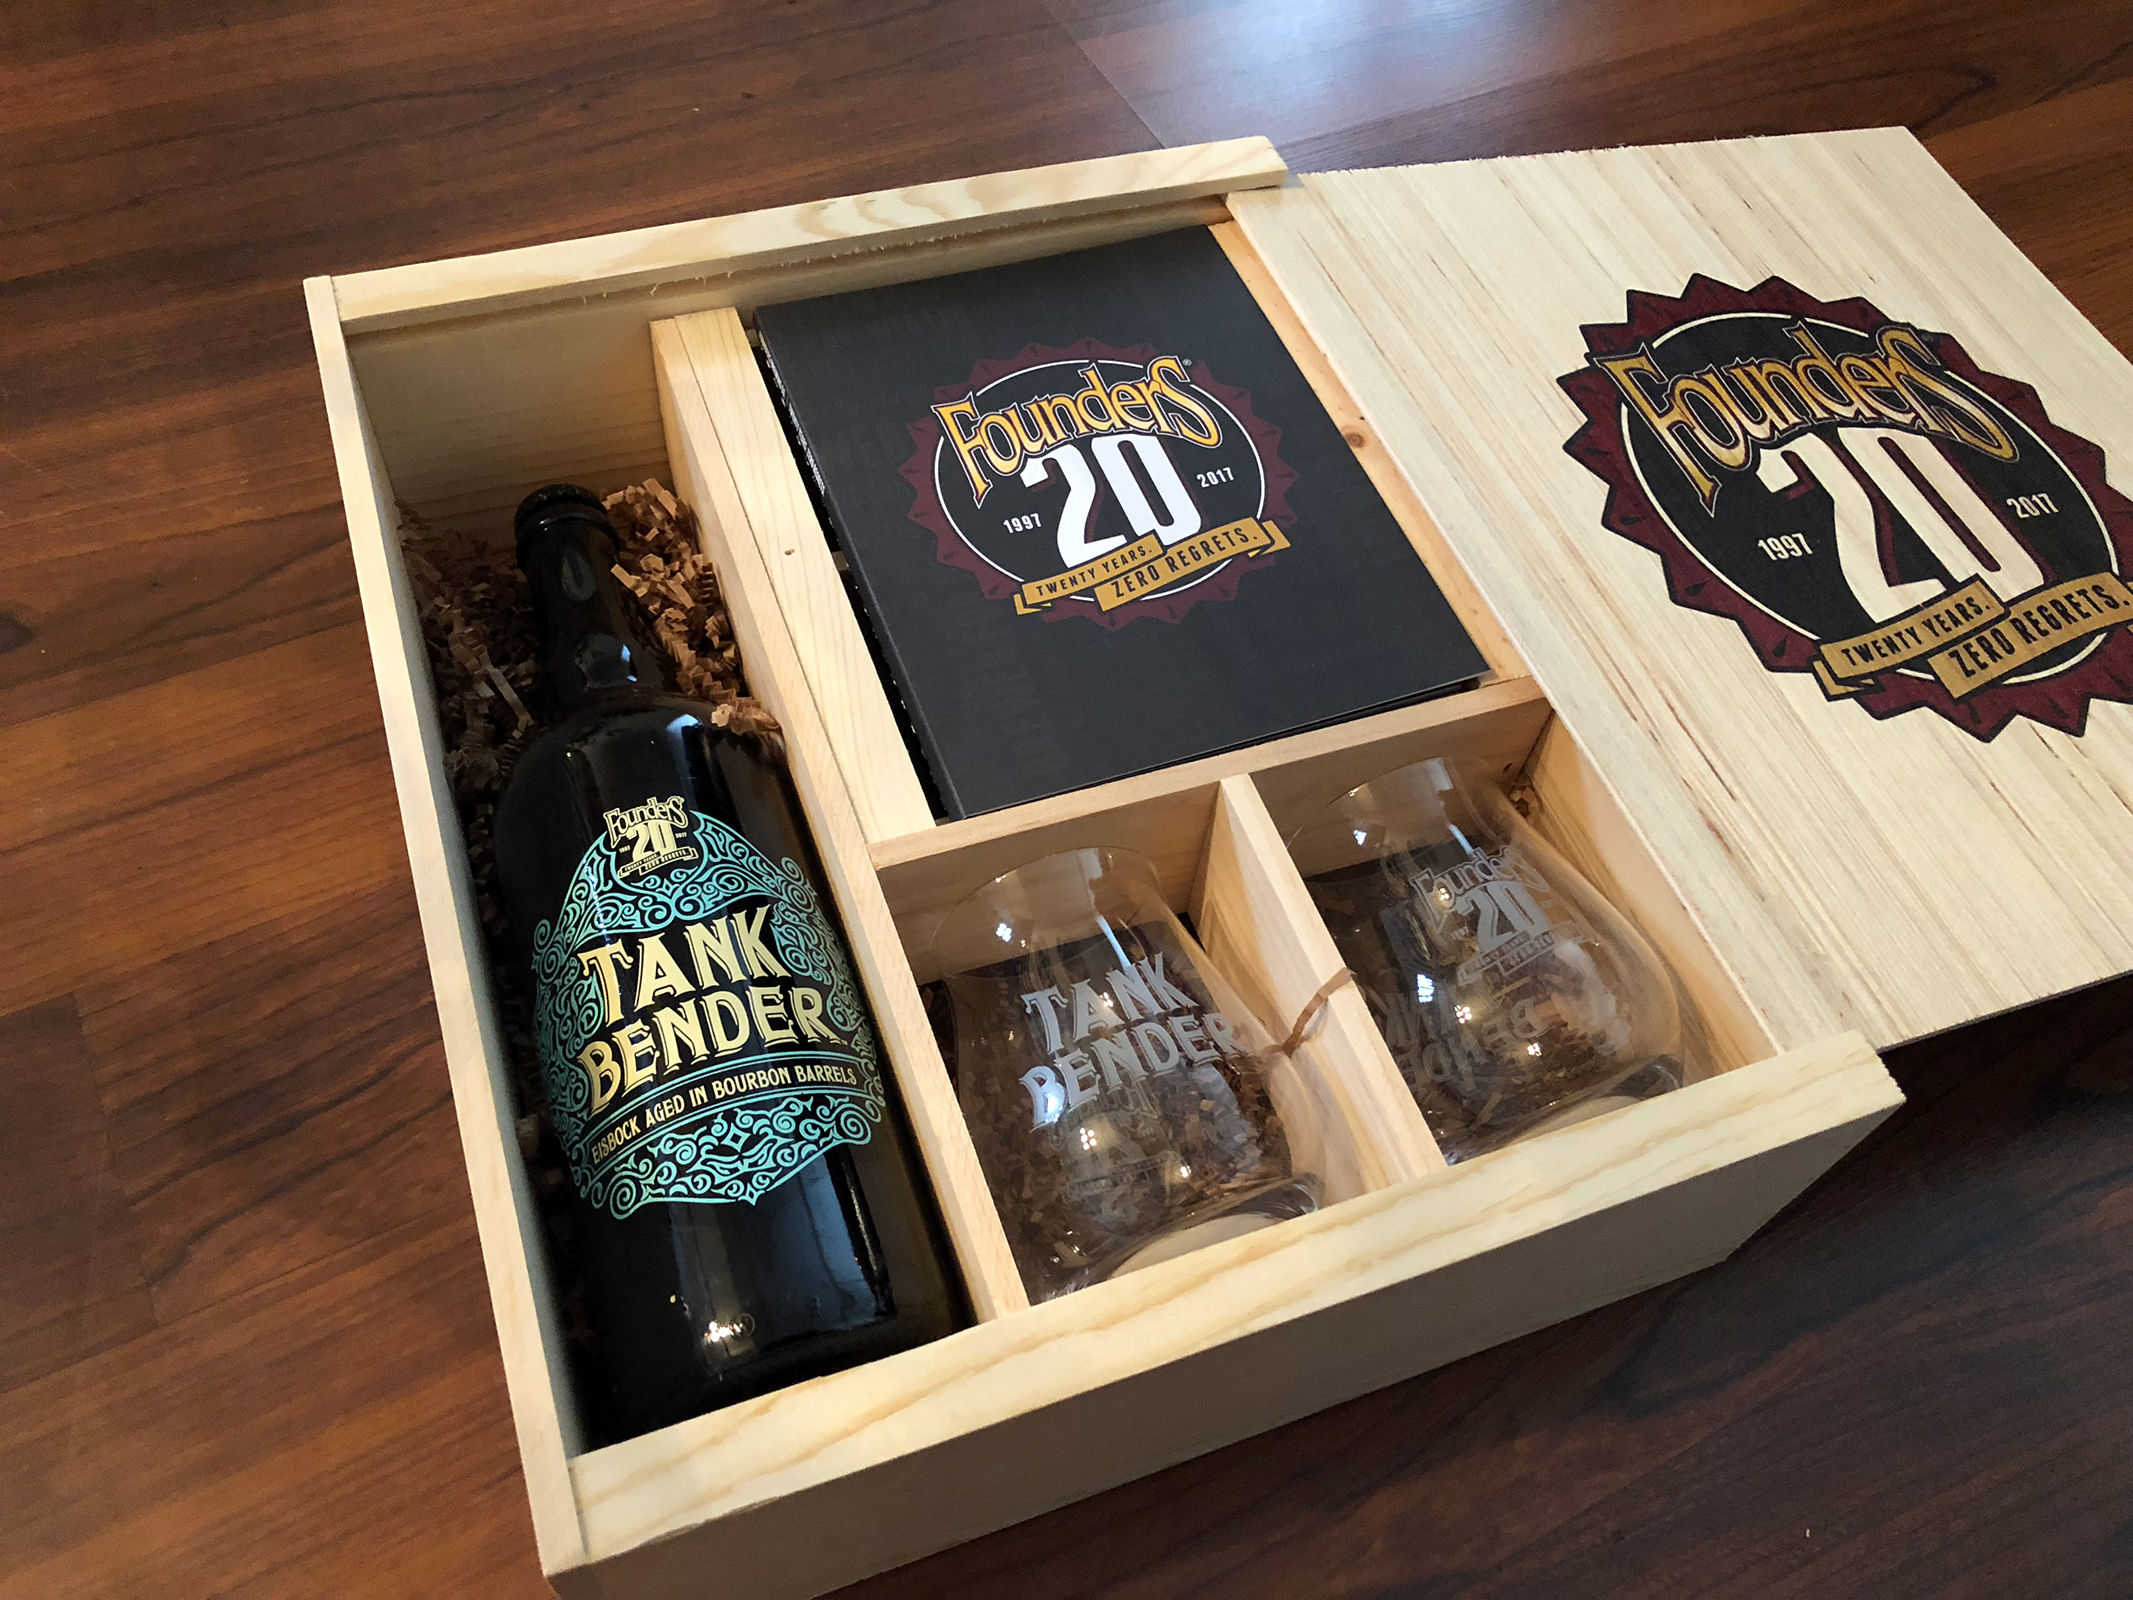 Founders Brewing Co. by Jets Like Taxis / Hopsmash